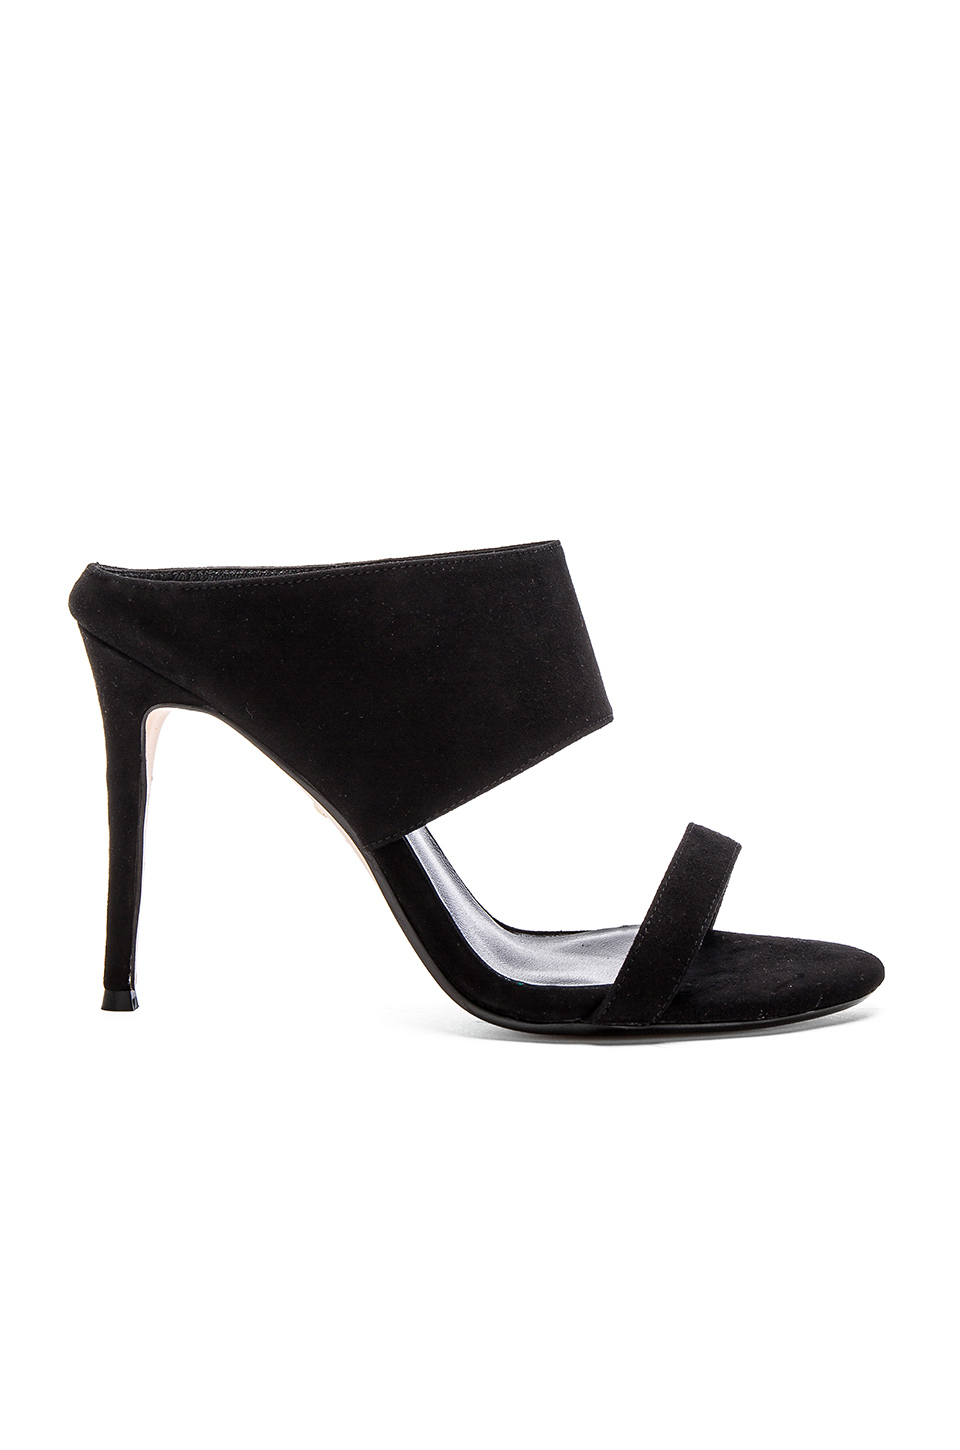 RAYE Bea Mule. Available in two colors. Revolve. Was: $180 Now: $126.